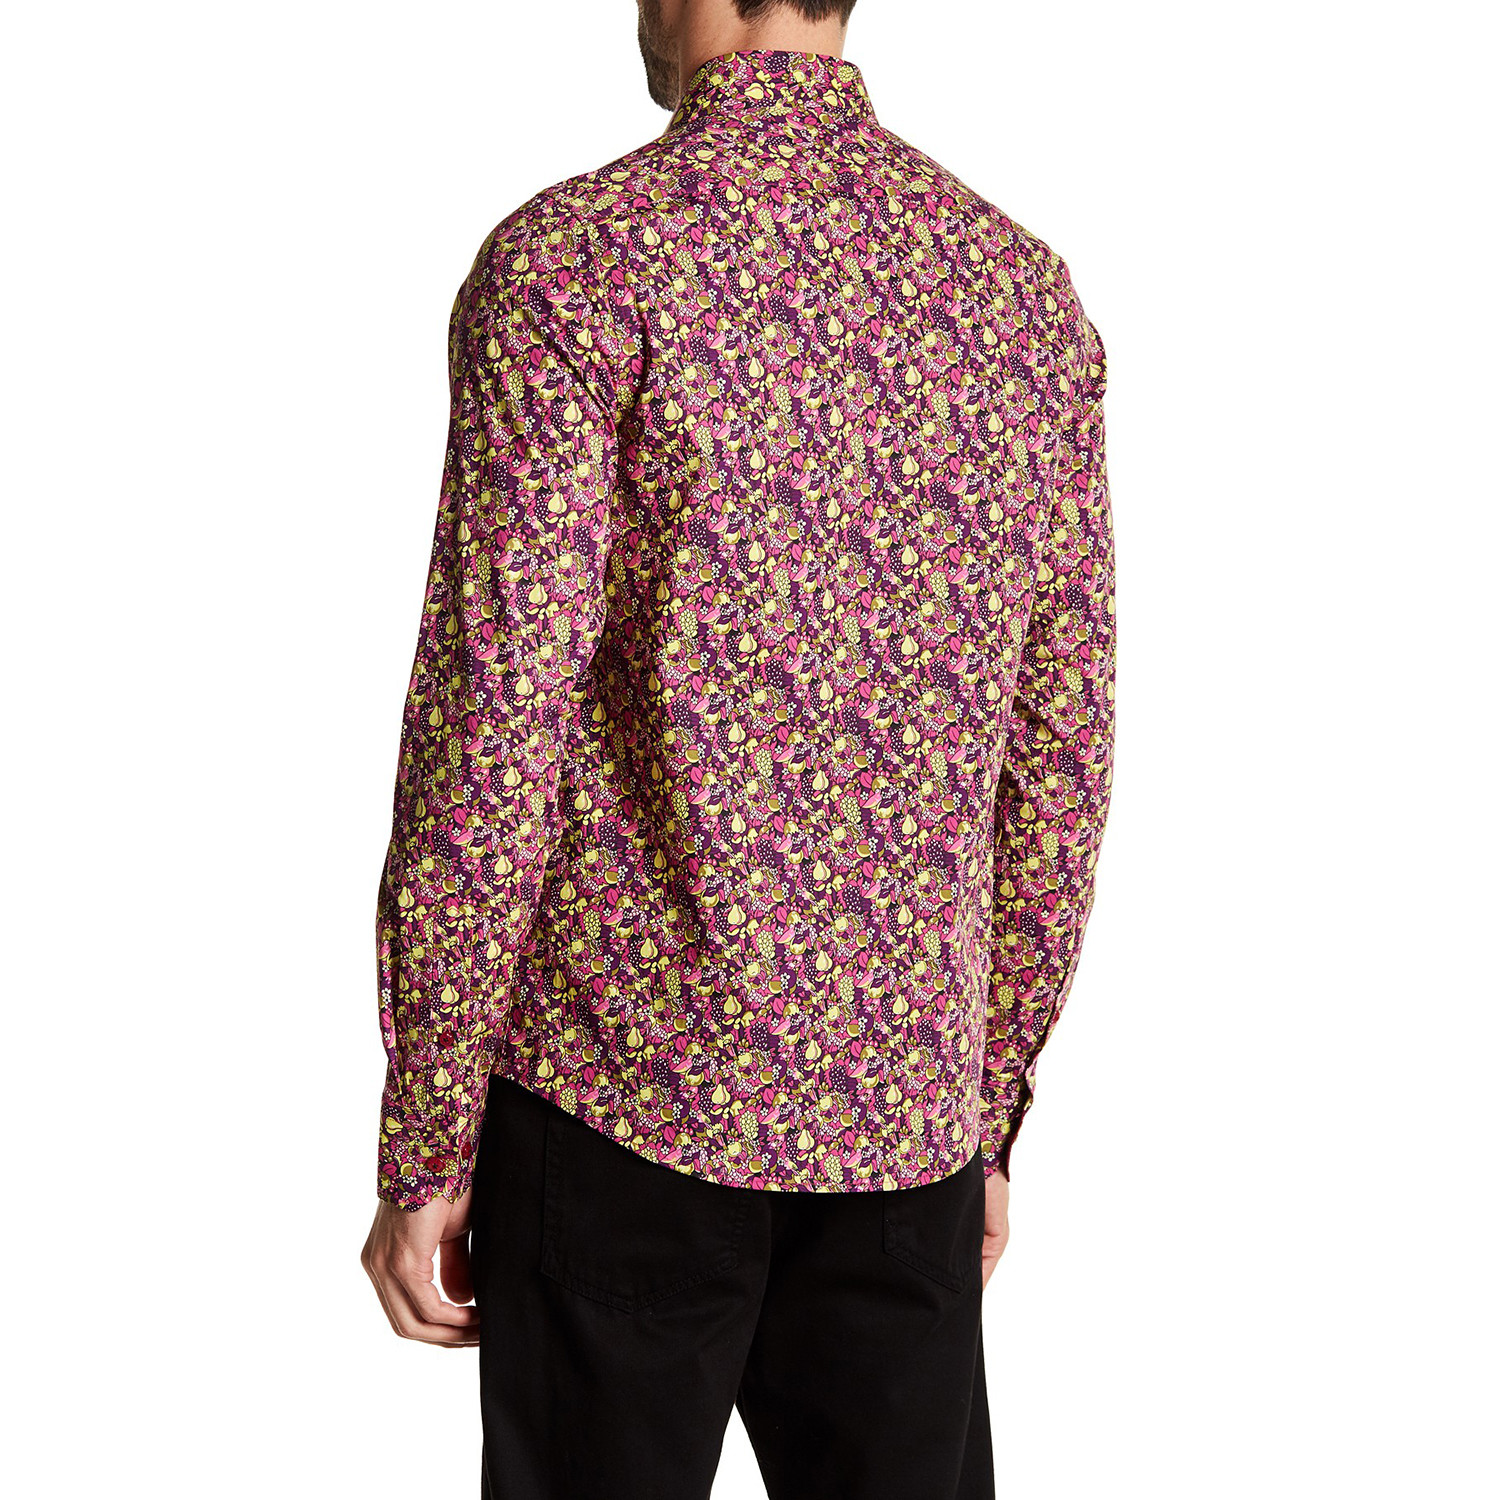 Harvest Long Sleeve Button Up Shirt Multi Colored S